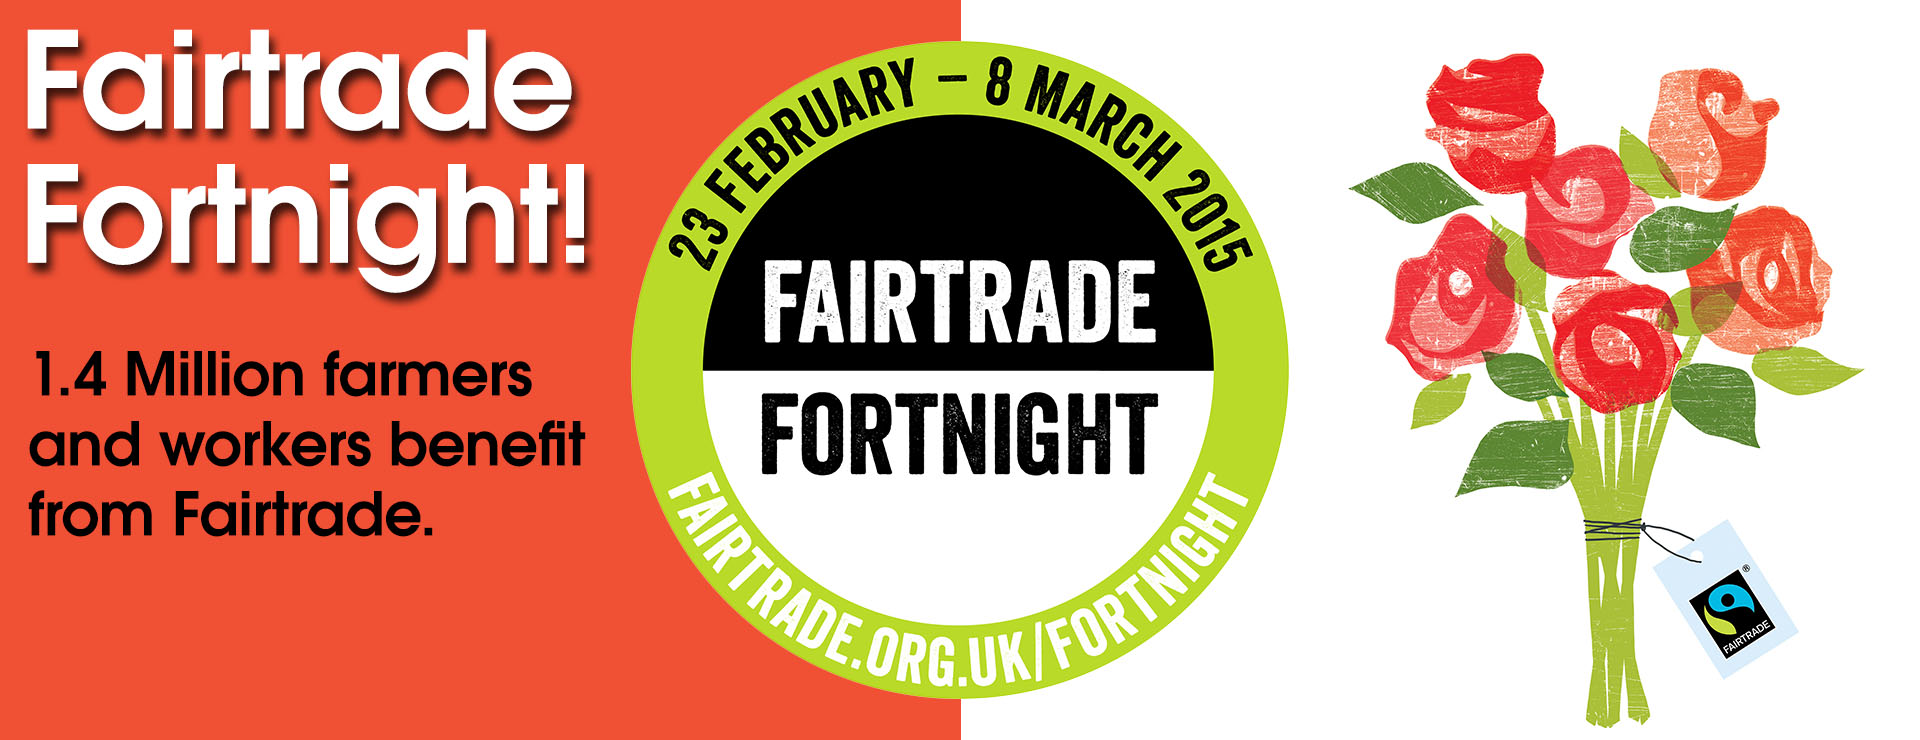 Fairtrade fortnight 06.jpg